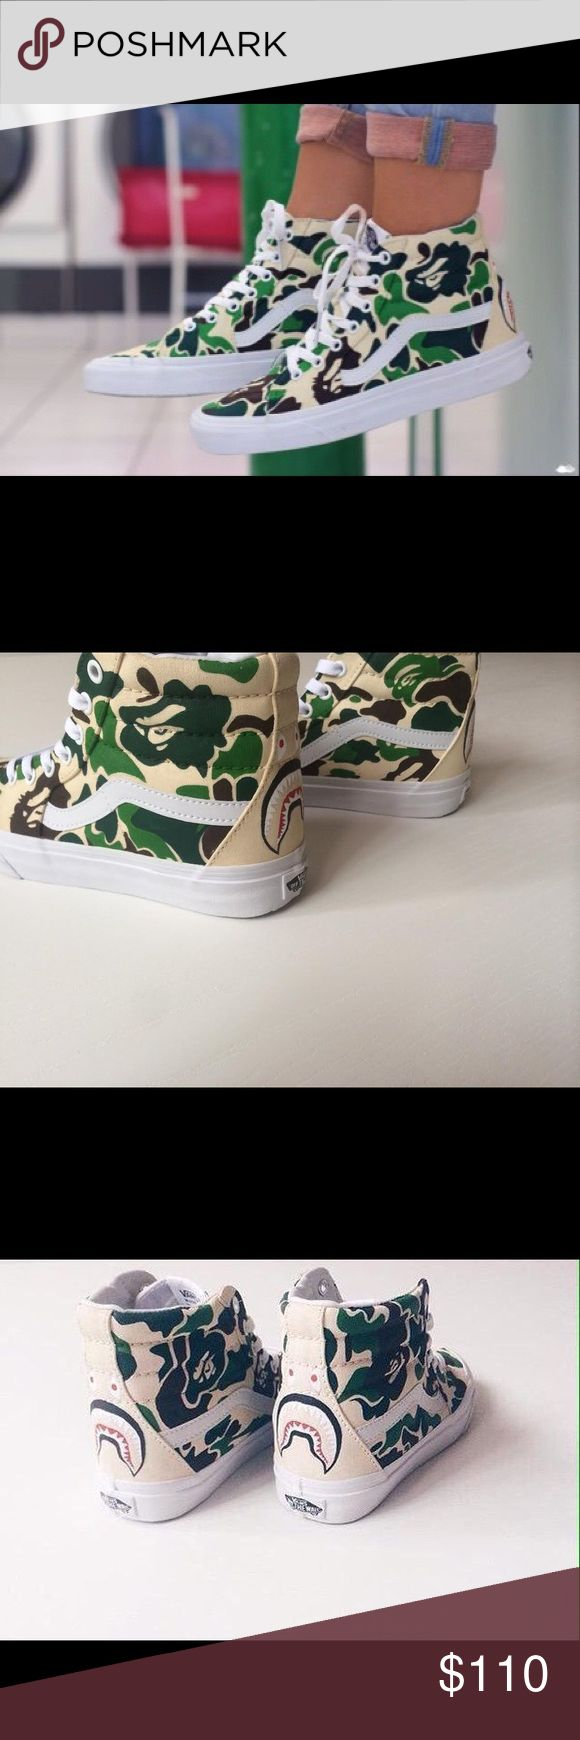 BAPE X Vans Sk8-Hi Sneakers Custom BAPE designed Vans. ***unisex shoe, runs in men's sizes, request size upon purchase*** Vans Shoes Sneakers